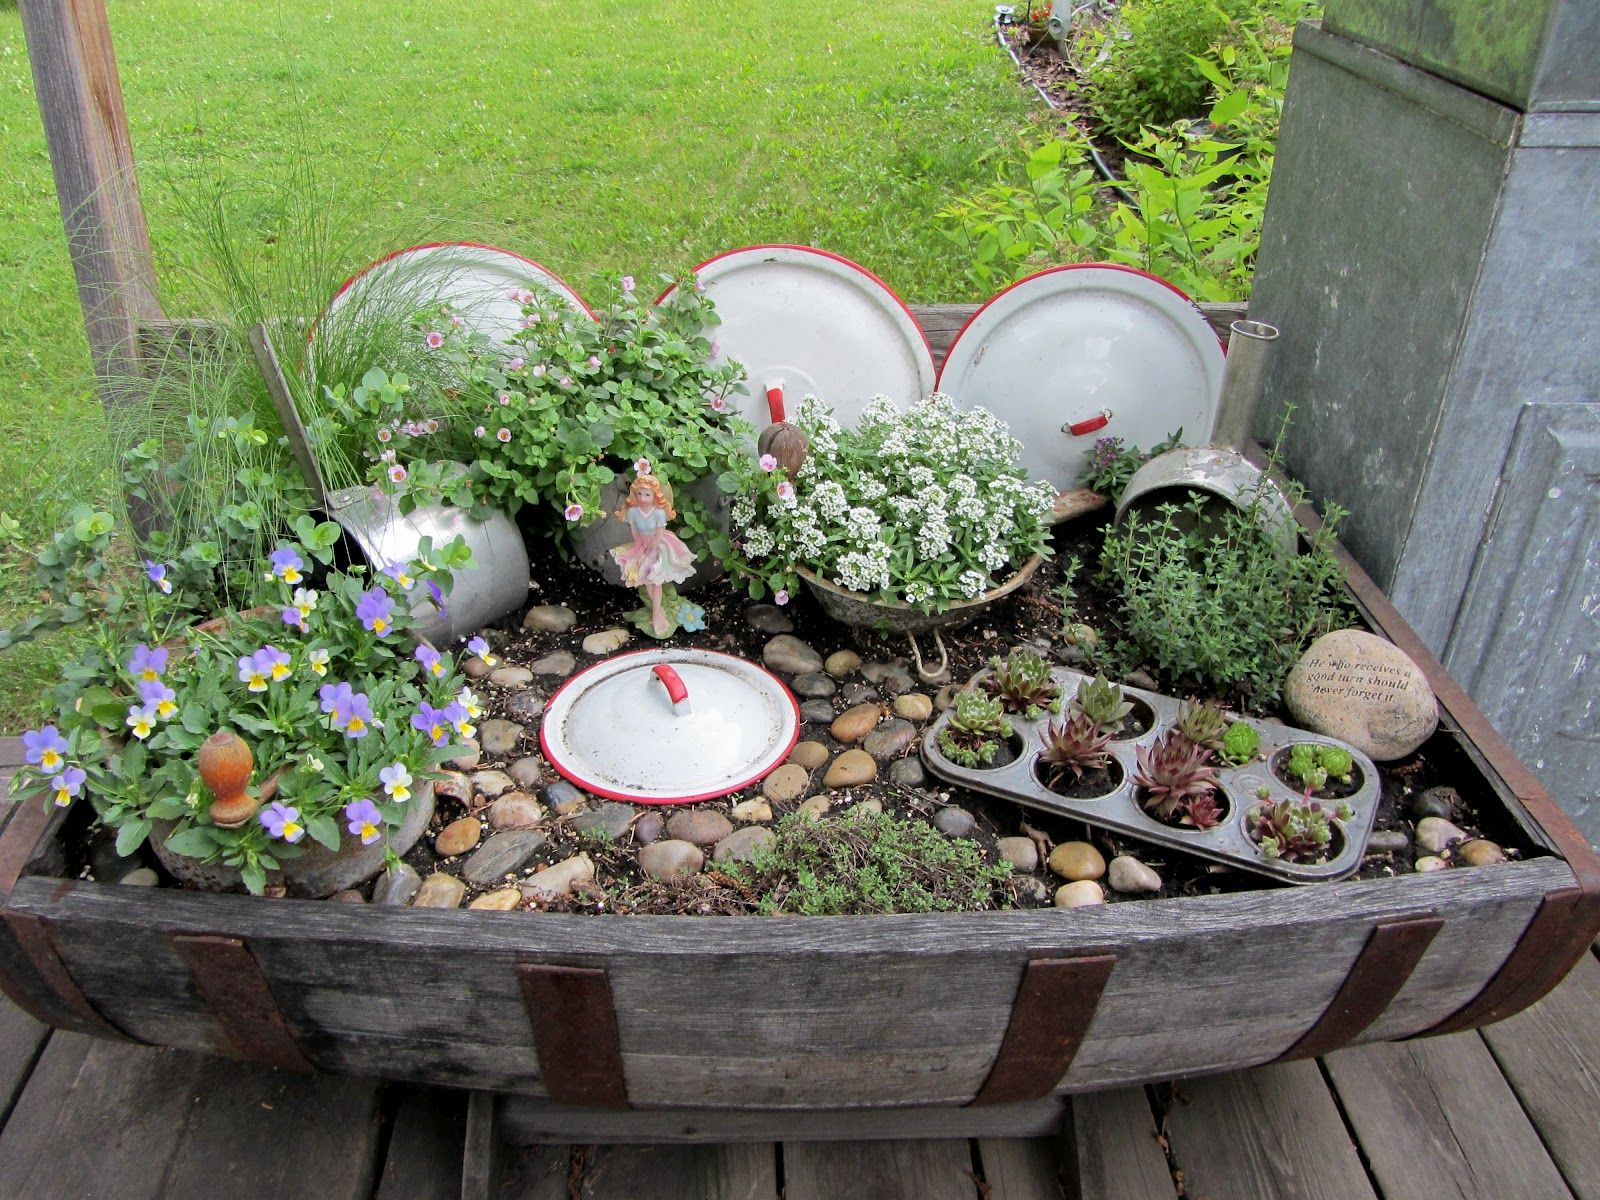 Cute Little Backyard Ideas on wine barrel planter ideas, garden ideas, outside kitchen ideas, camping bachelorette party ideas, cute flowers, small apartment patio decorating ideas, cute furniture, cute home, masterbath ideas, deck decorating ideas, cute front yard landscaping, outdoor patio lighting ideas, cute garden gnomes, vegetable ideas, bean pole ideas, cute porches, small back yard landscaping ideas, modern bedroom wall decorating ideas, cute diy, small front yard landscaping ideas,